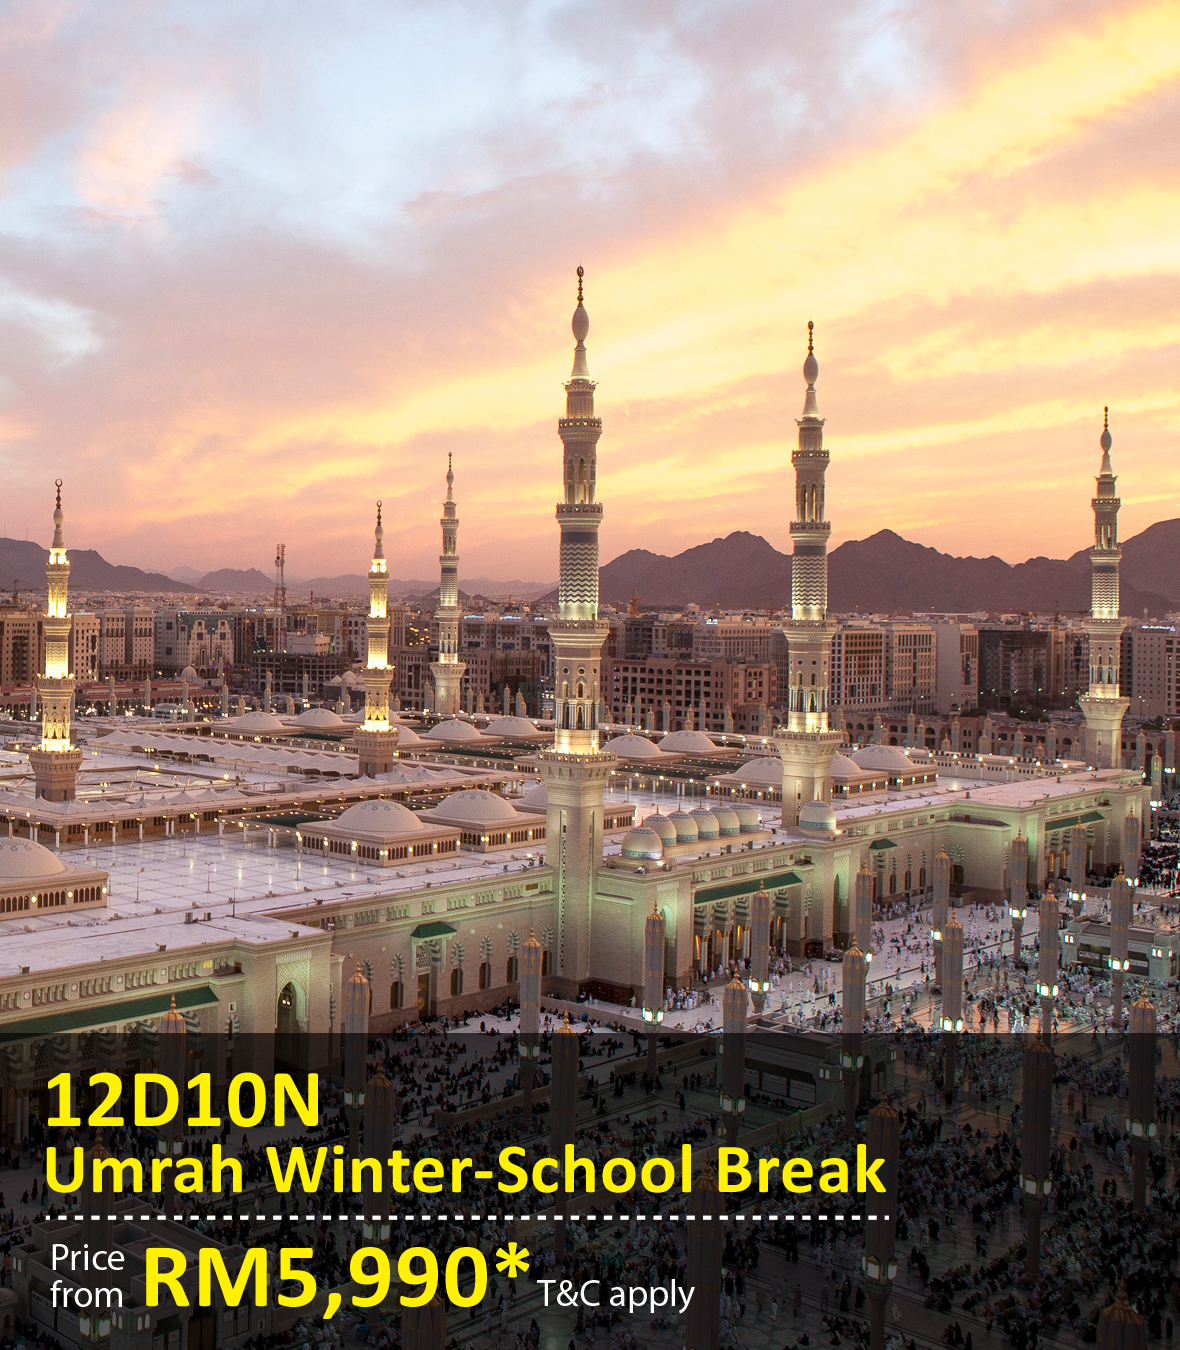 UOB Special Promo Package: 12 Days 10 Nights Umrah Winter School Break